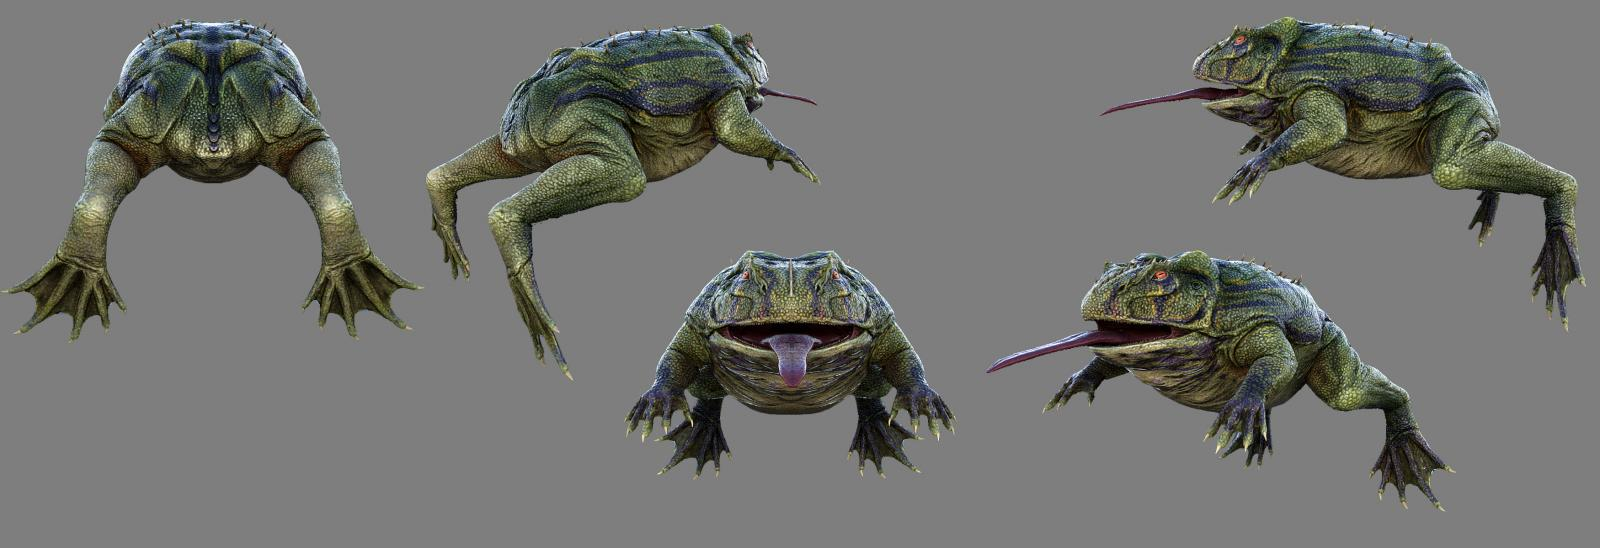 New Creature: Beelzebufo